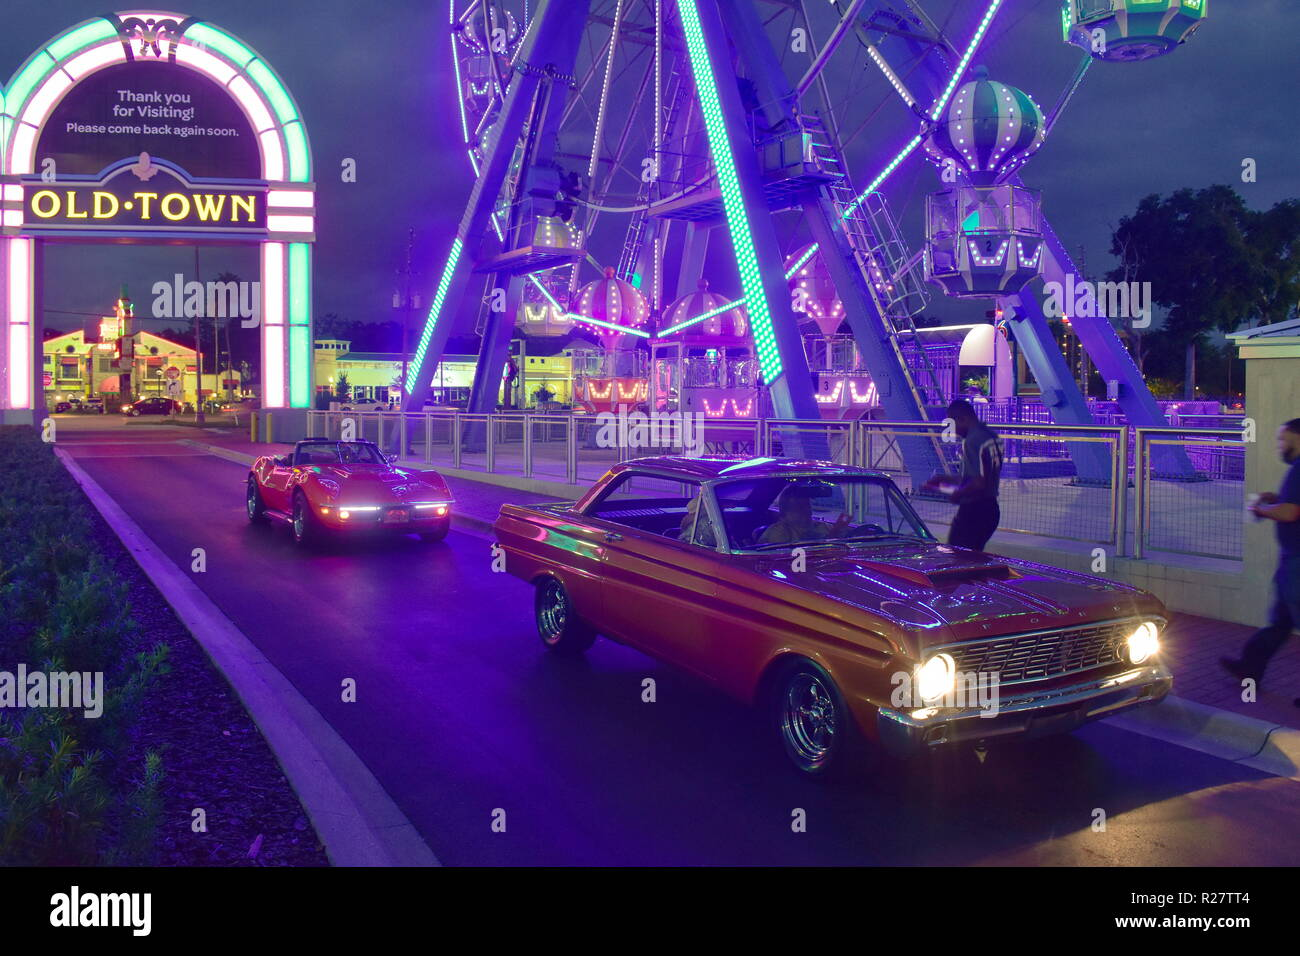 Orlando, Florida.  November 02, 2018 Nice old cars registering to enter Saturday Nite Classic Car Show and Cruise,  at Old Town Kissimme. Stock Photo